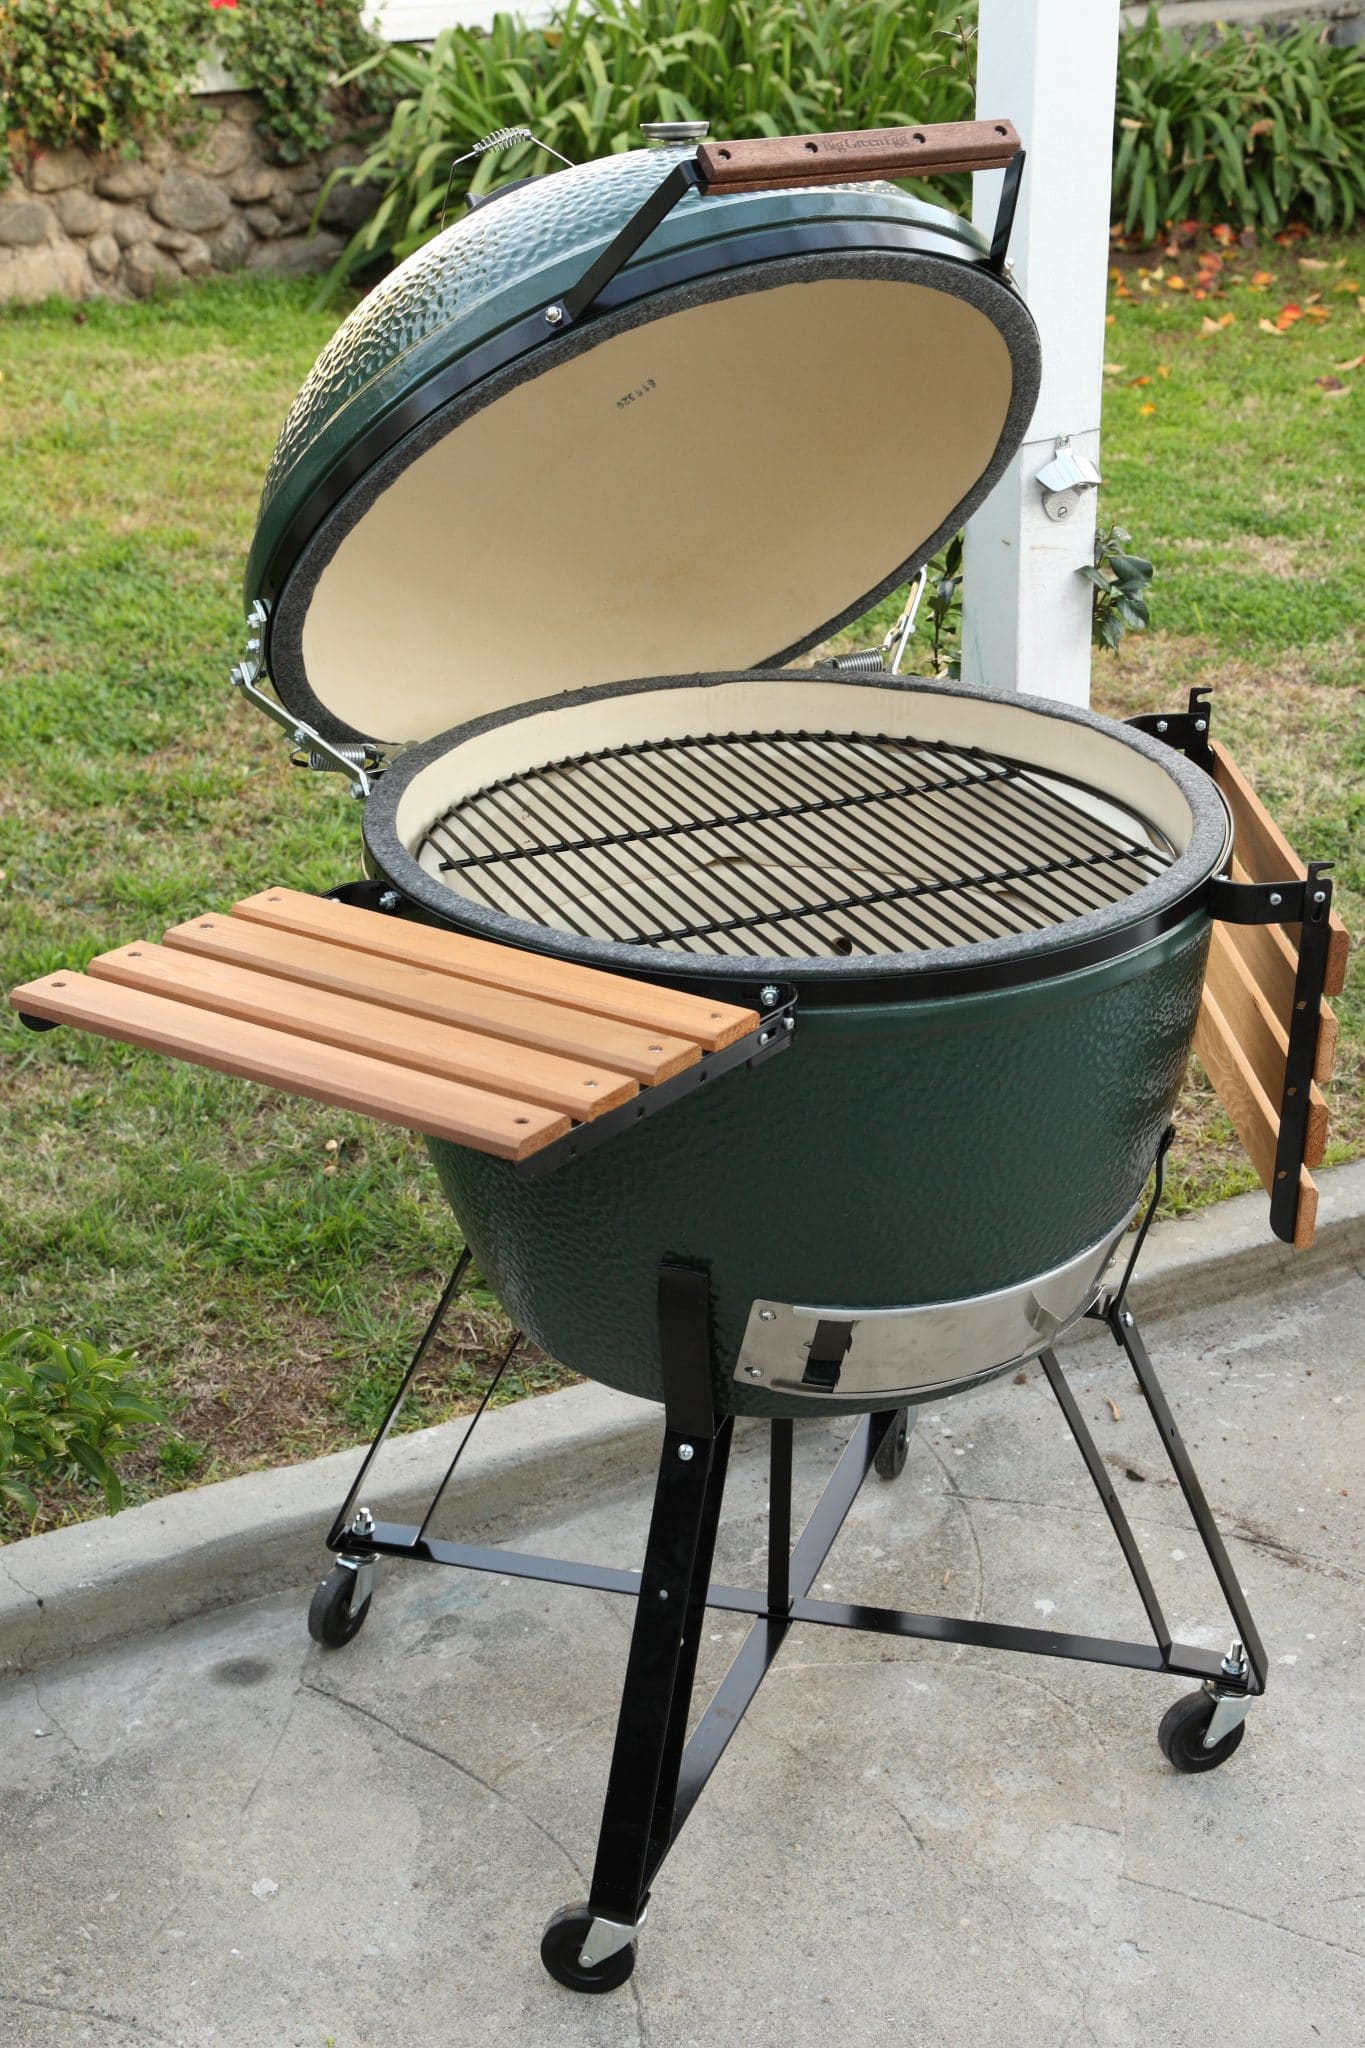 charcoal grill, charcoal grill bbq